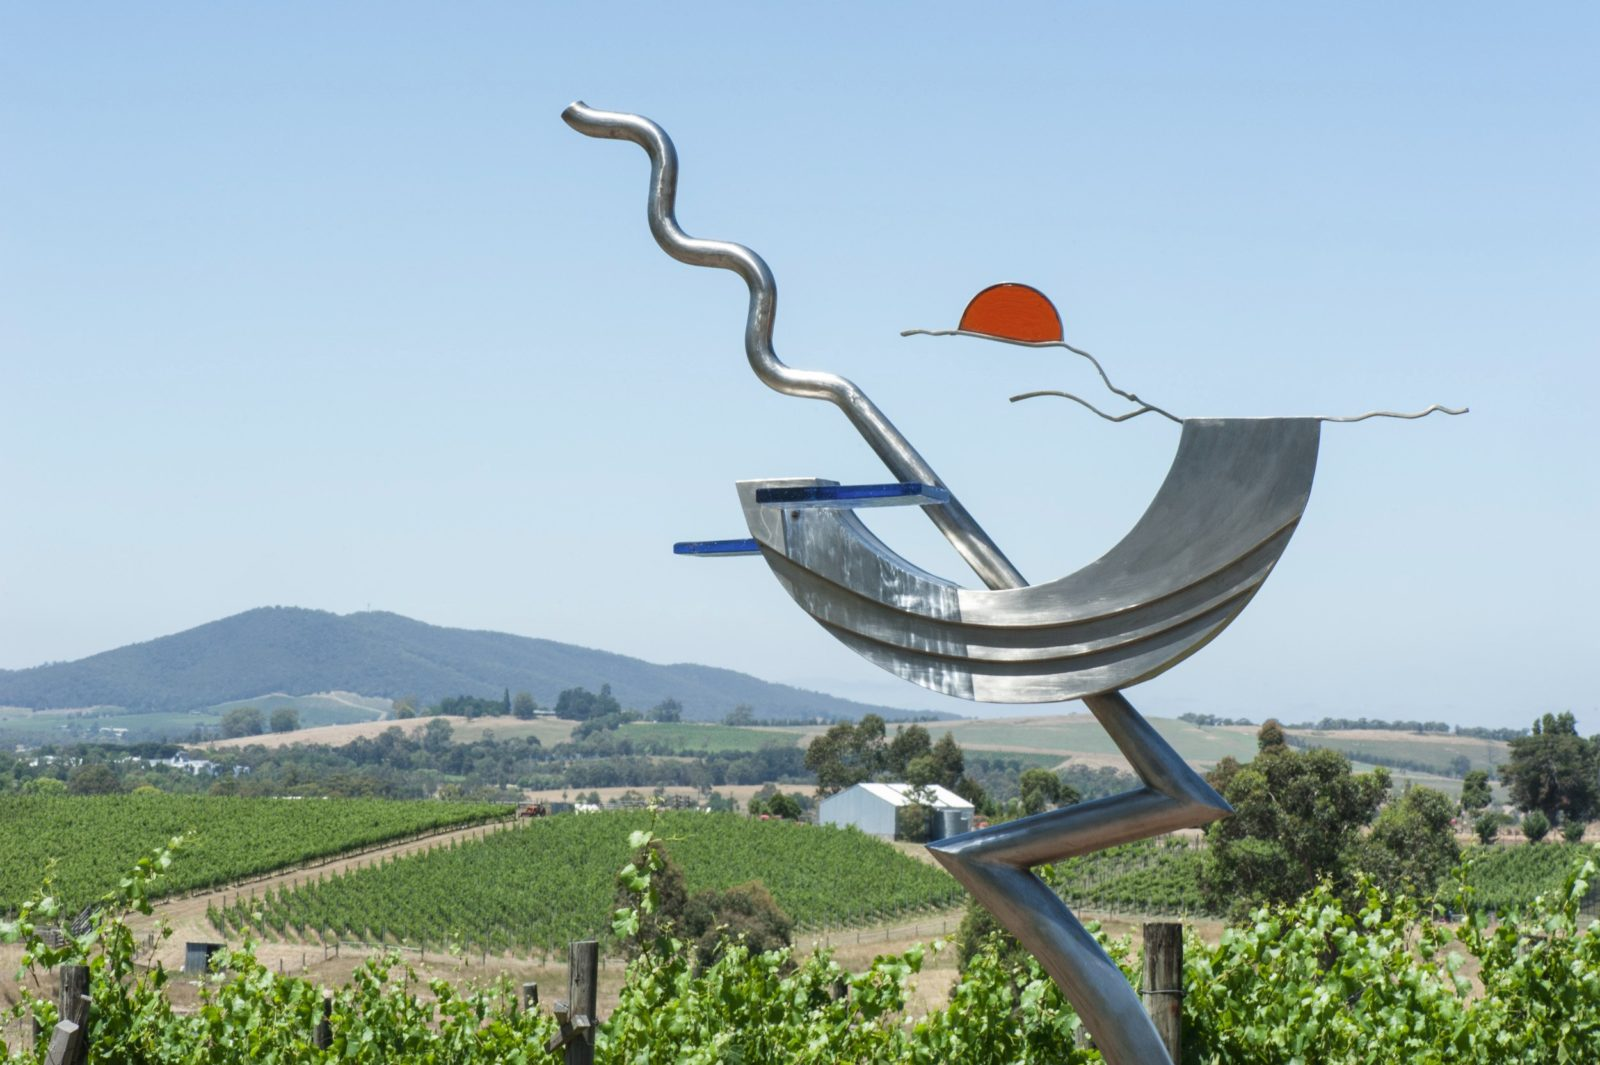 Stainless steel sculptures with vineyard views